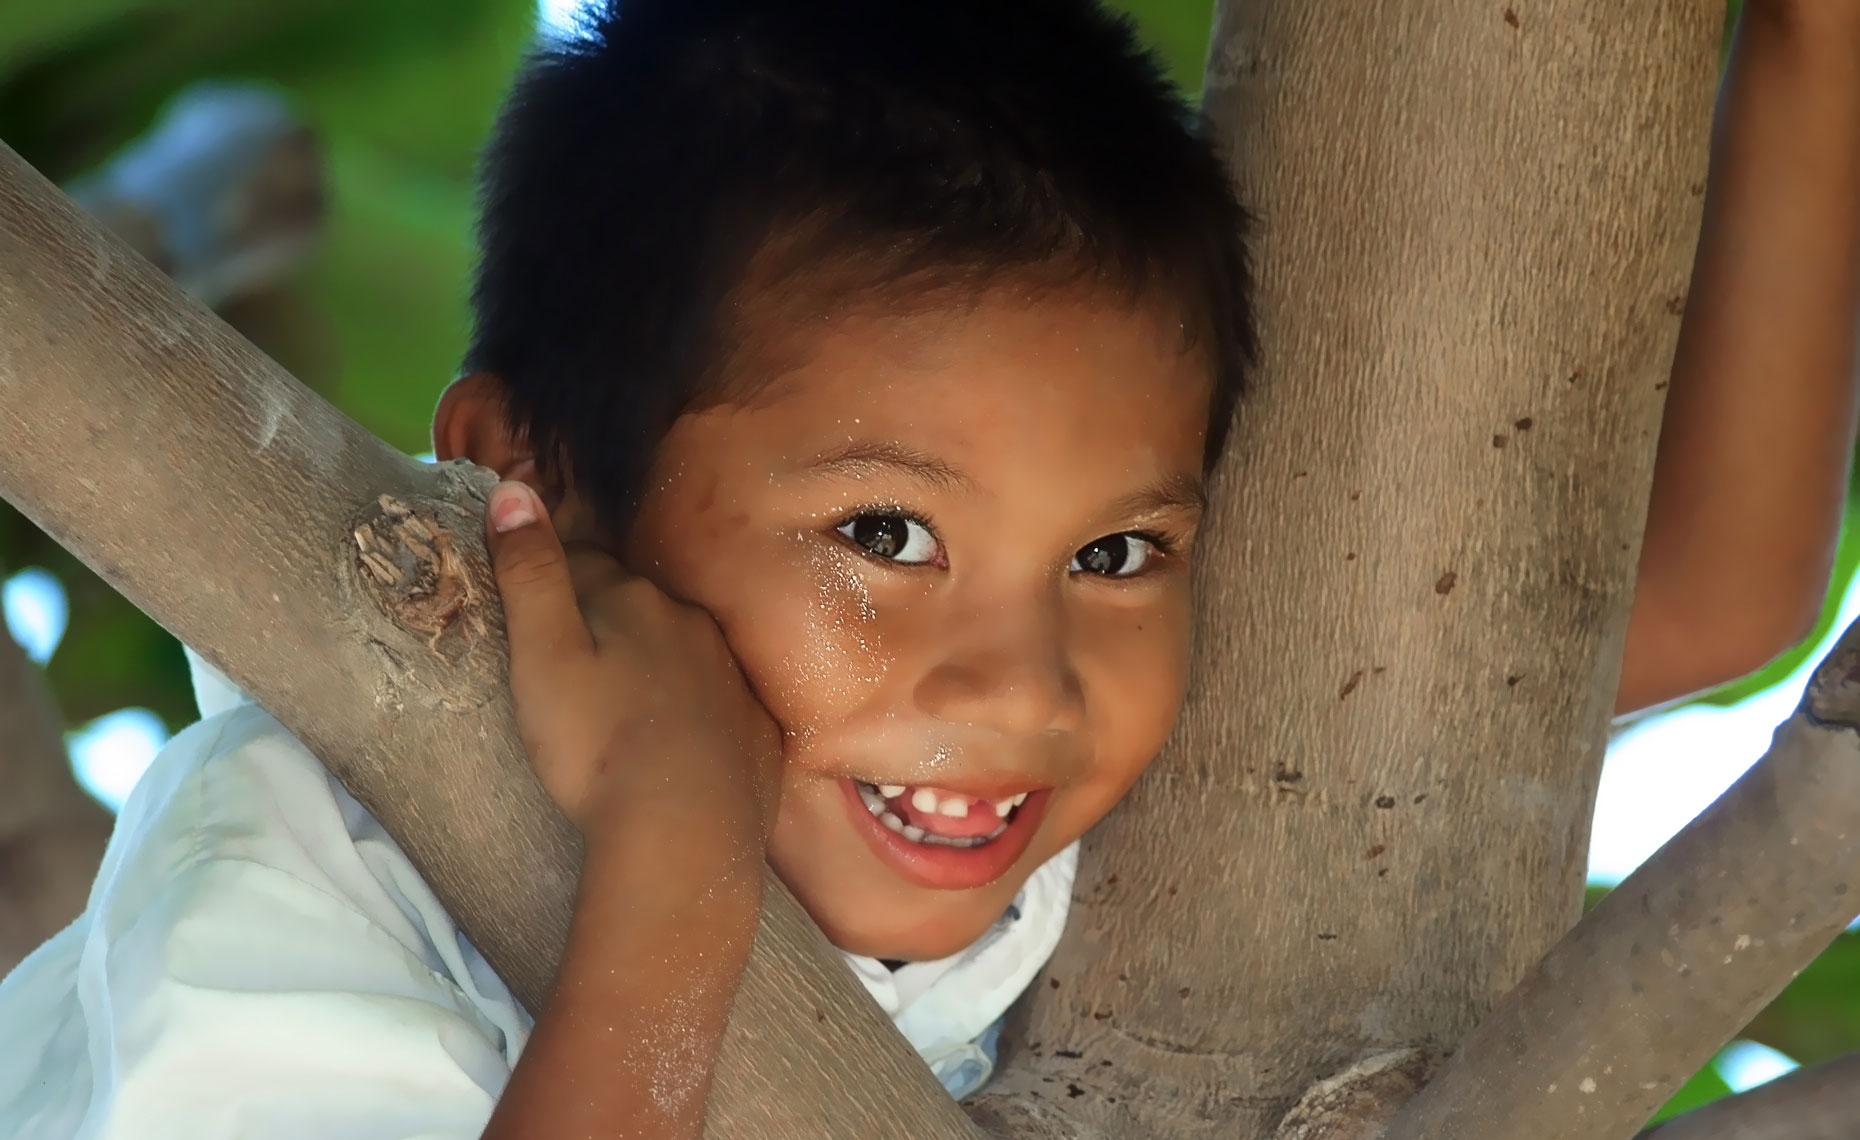 belize-boy-in-tree.jpg